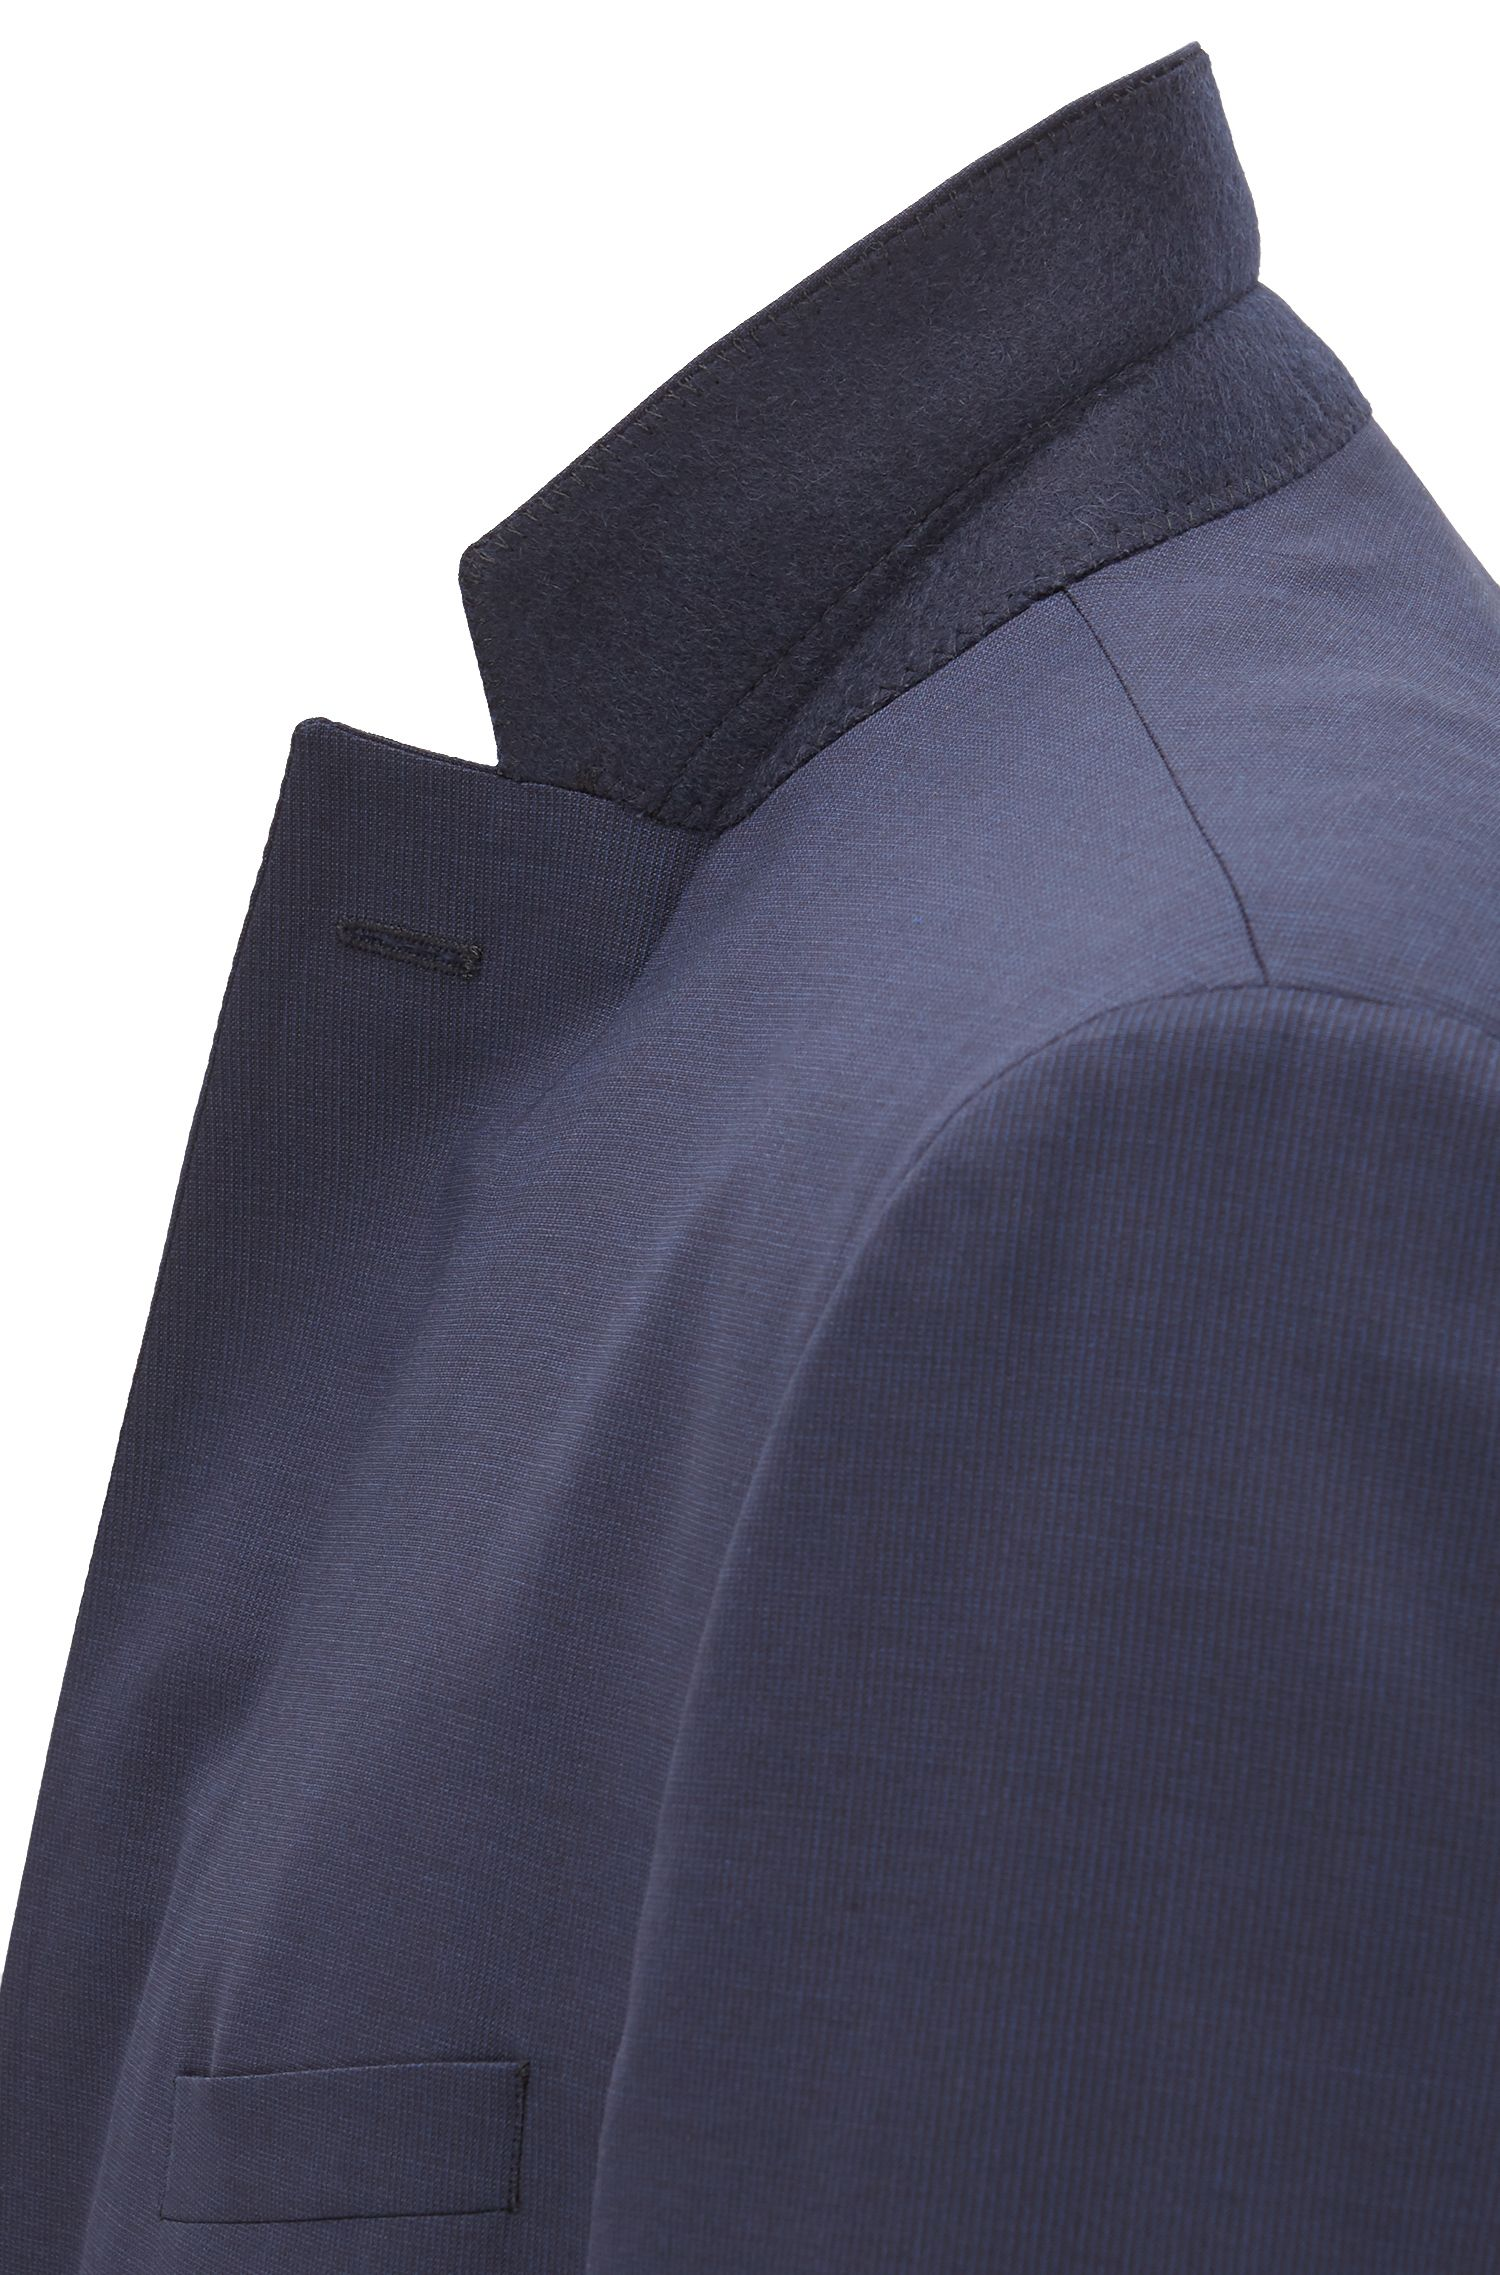 Extra-slim-fit suit in a wool blend with natural stretch